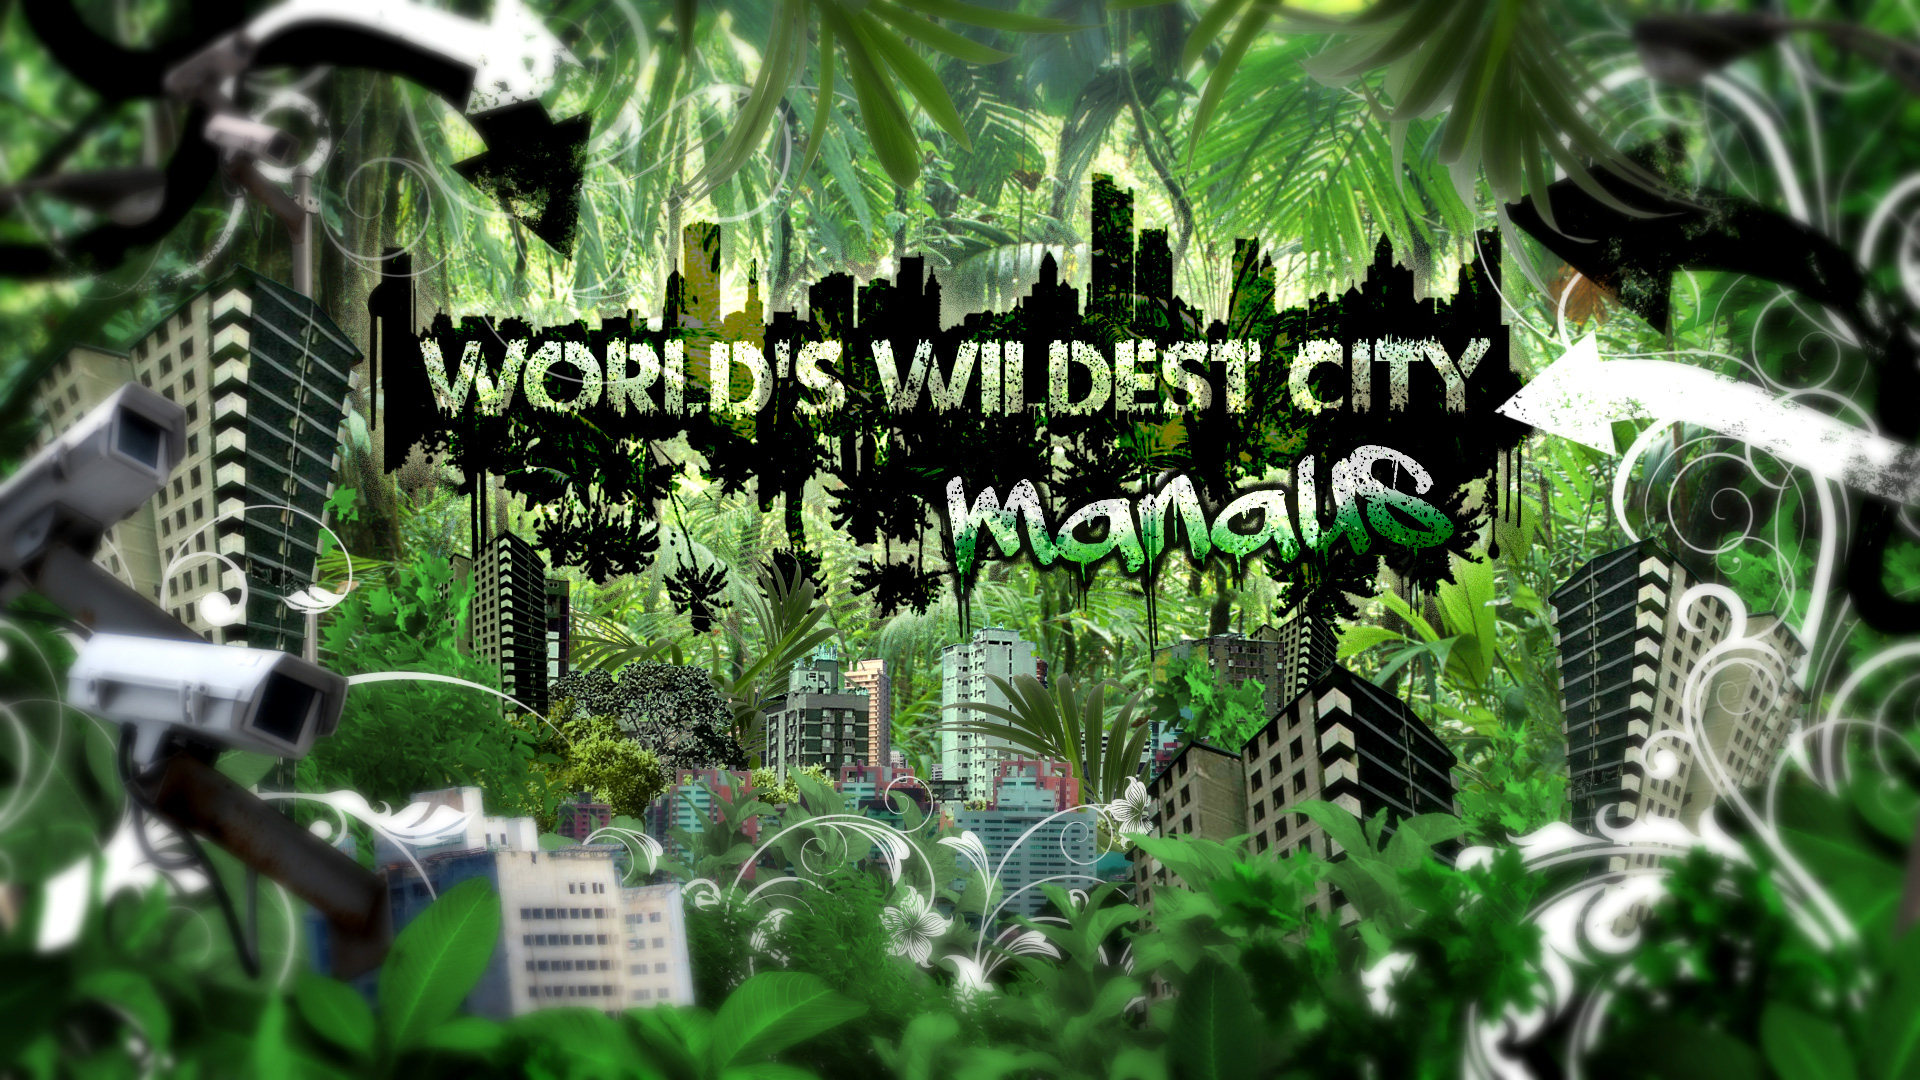 Worlds Wildest City ©HoleyandMoley 2014